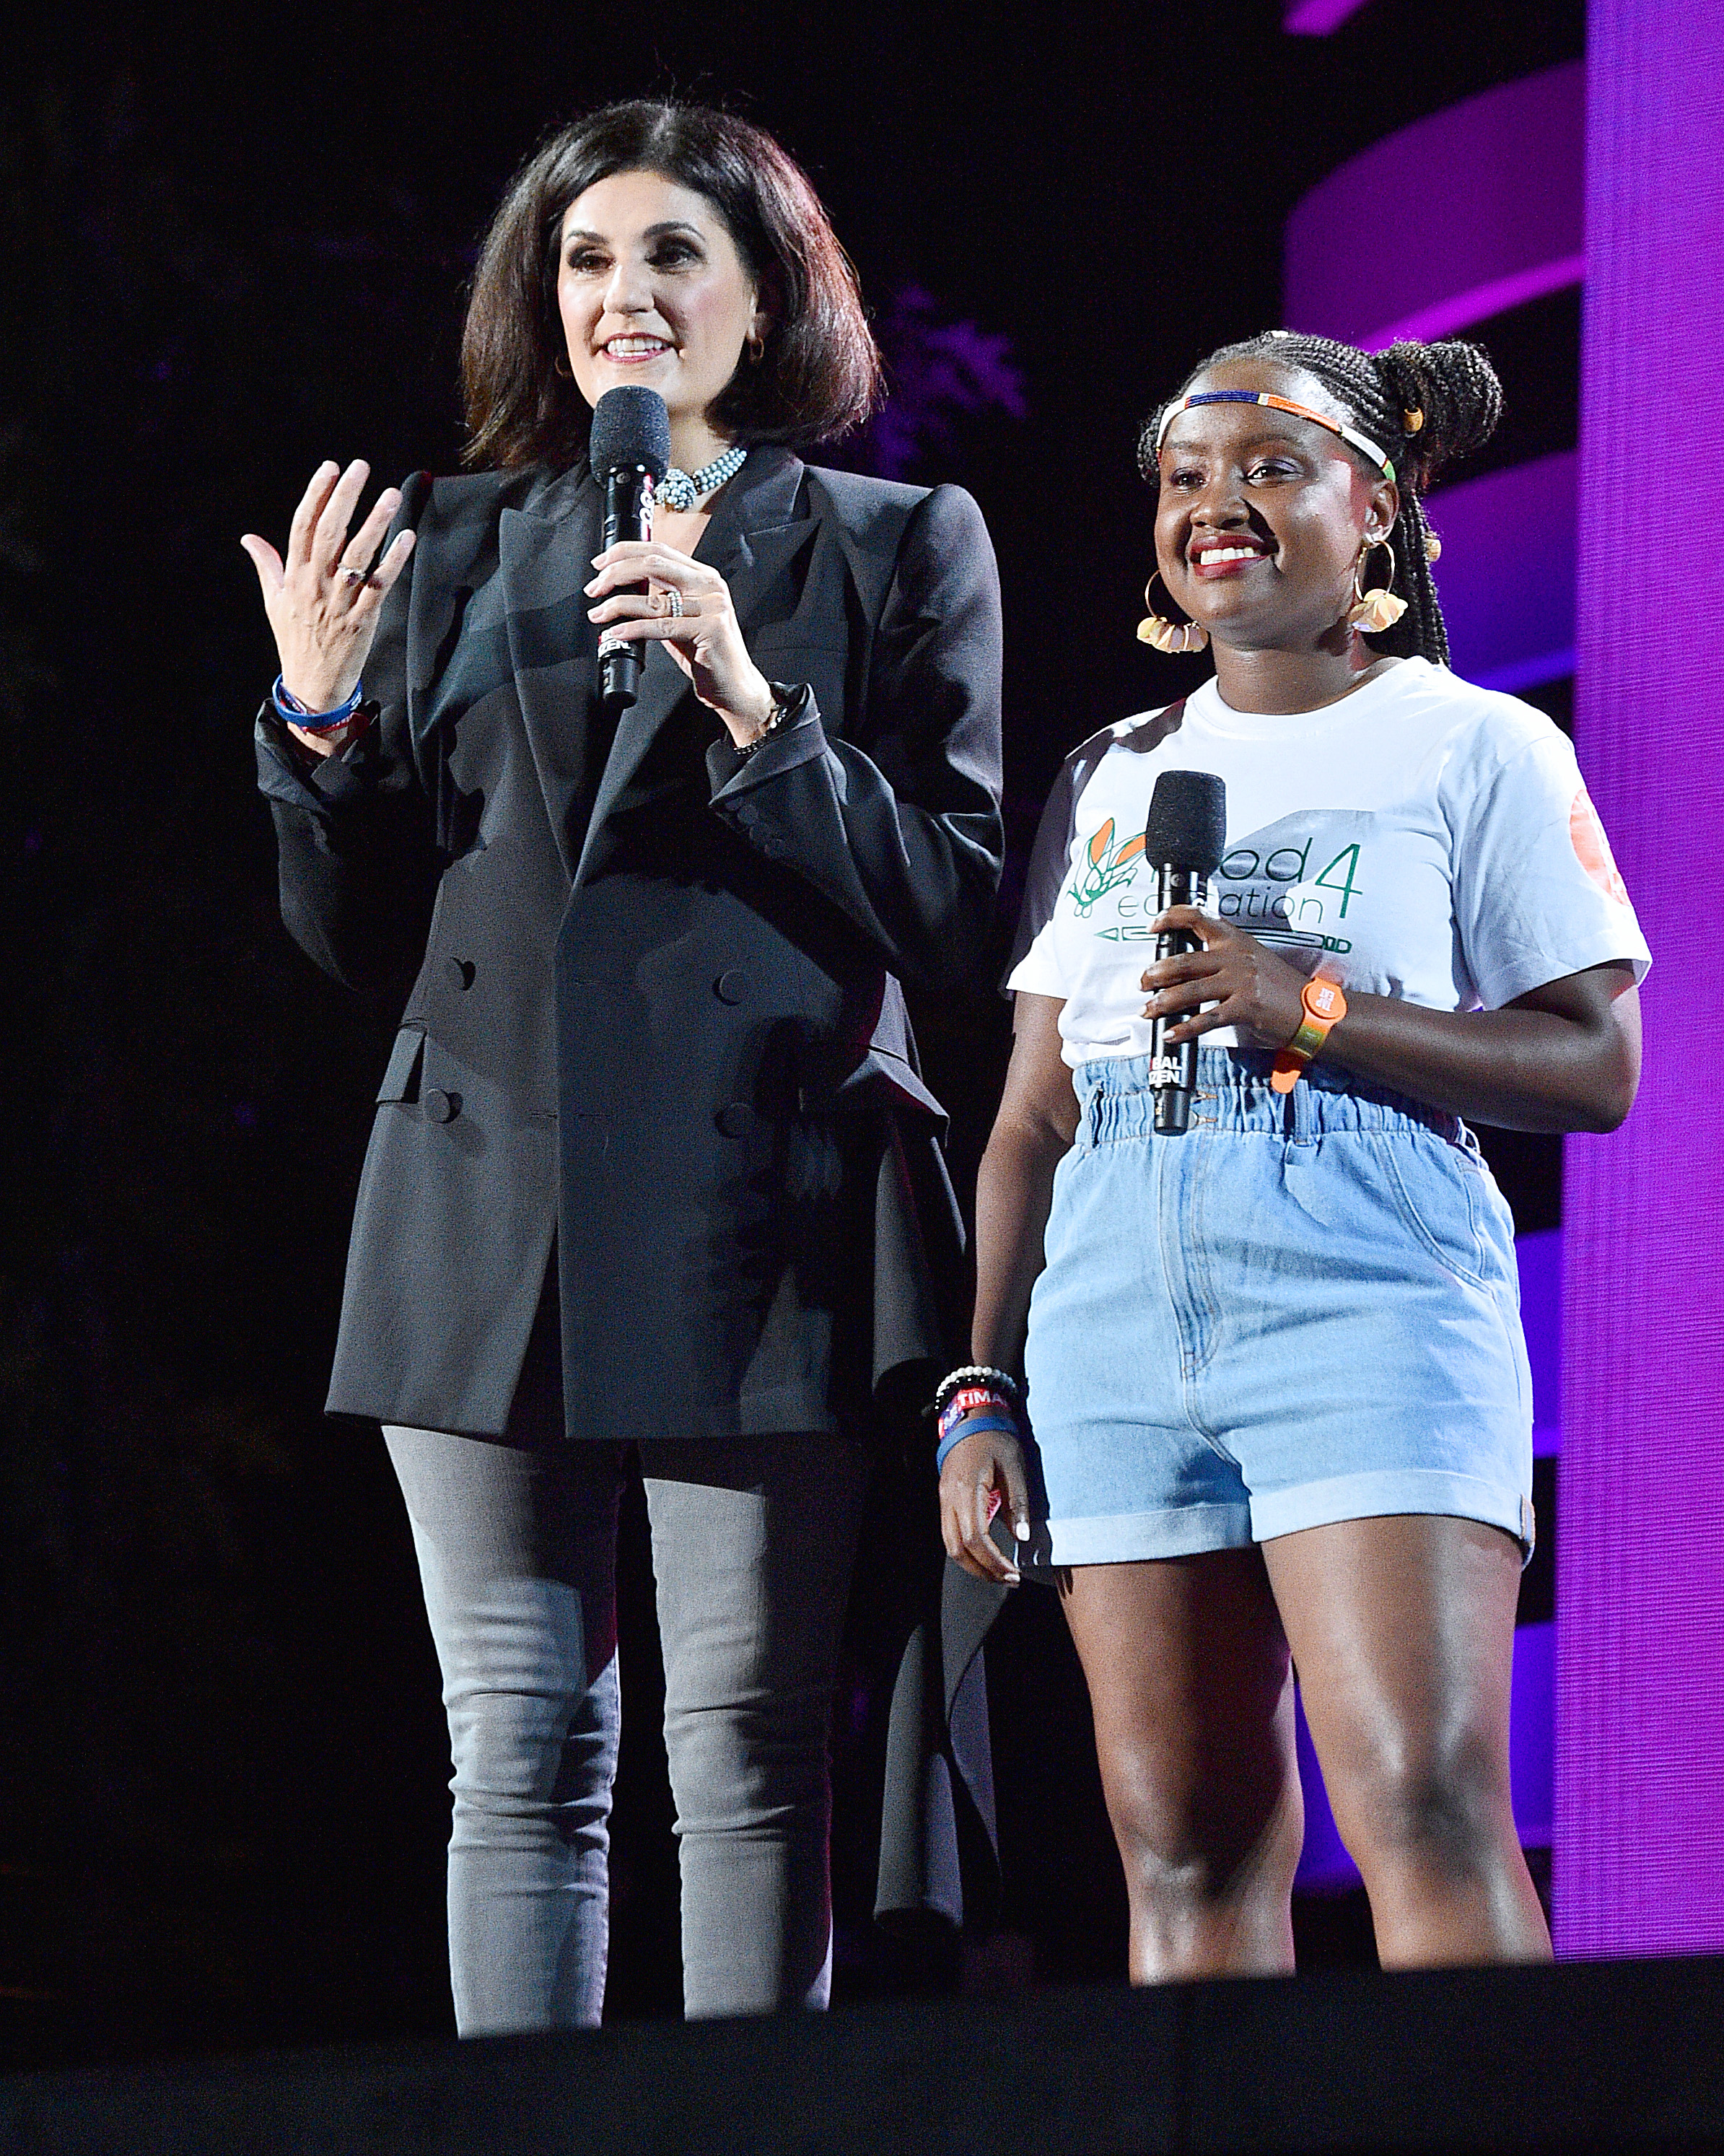 NEW YORK, NEW YORK - SEPTEMBER 28: Cisco EVP and CPO Fran Katsoudas and Founder & Executive Director Youth Leadership & Food for Education Wawira Njiru speak onstage during the 2019 Global Citizen Festival: Power The Movement in Central Park on September 28, 2019 in New York City. (Photo by Theo Wargo/Getty Images for Global Citizen)